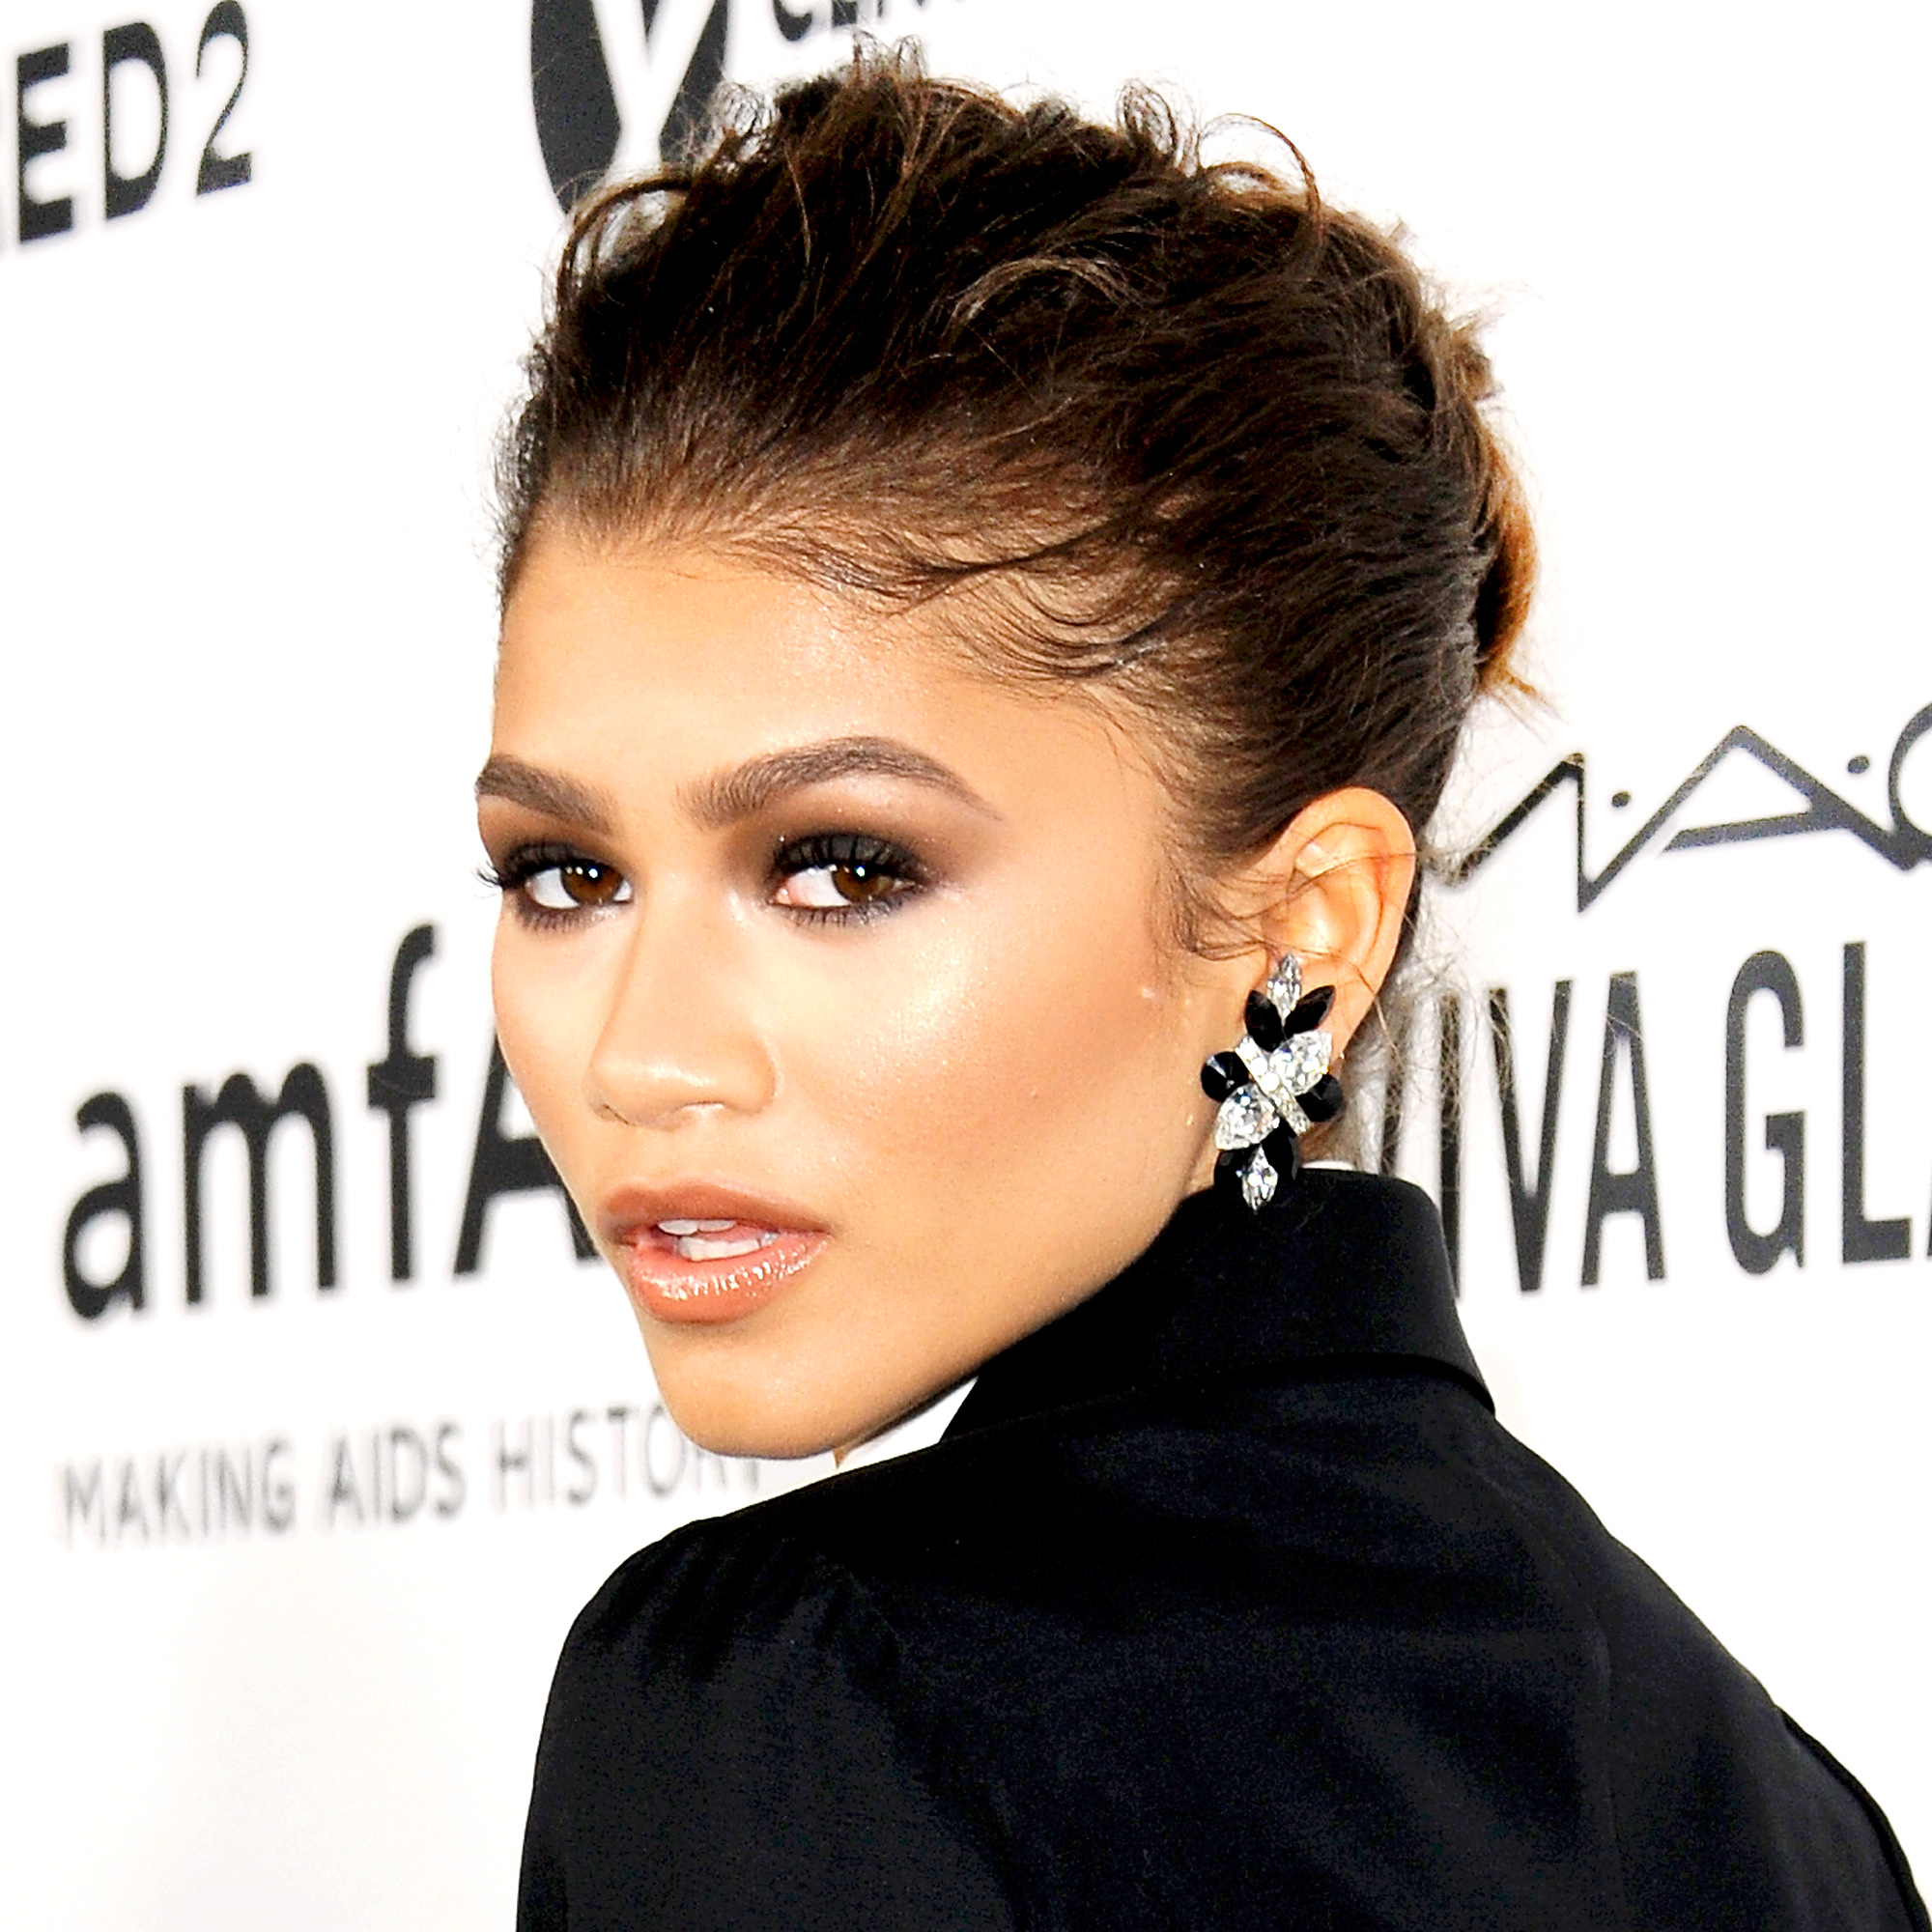 Zendaya arrives at amfAR's Inspiration Gala Los Angeles at Milk Studios on October 29, 2015 in Hollywood, California.